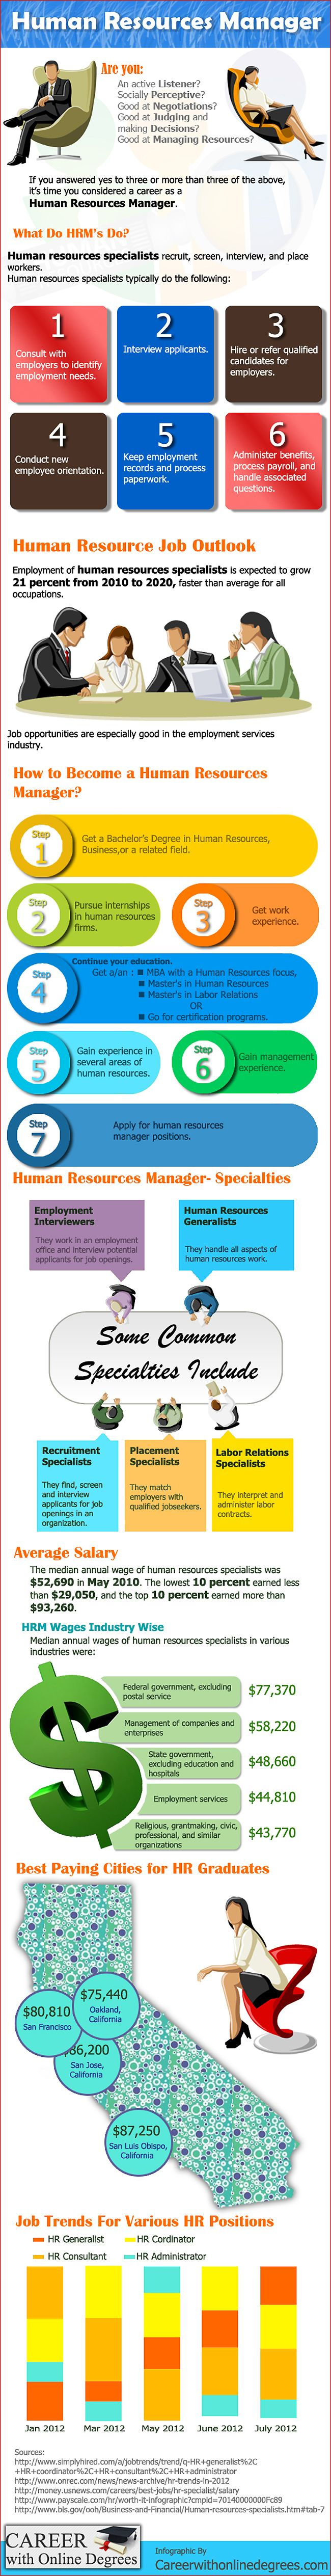 How to Become a Human Resources Manager? #HR #HumanResources http://careerwithonlinedegrees.com/top-professions/how-to-human-resources-manager/